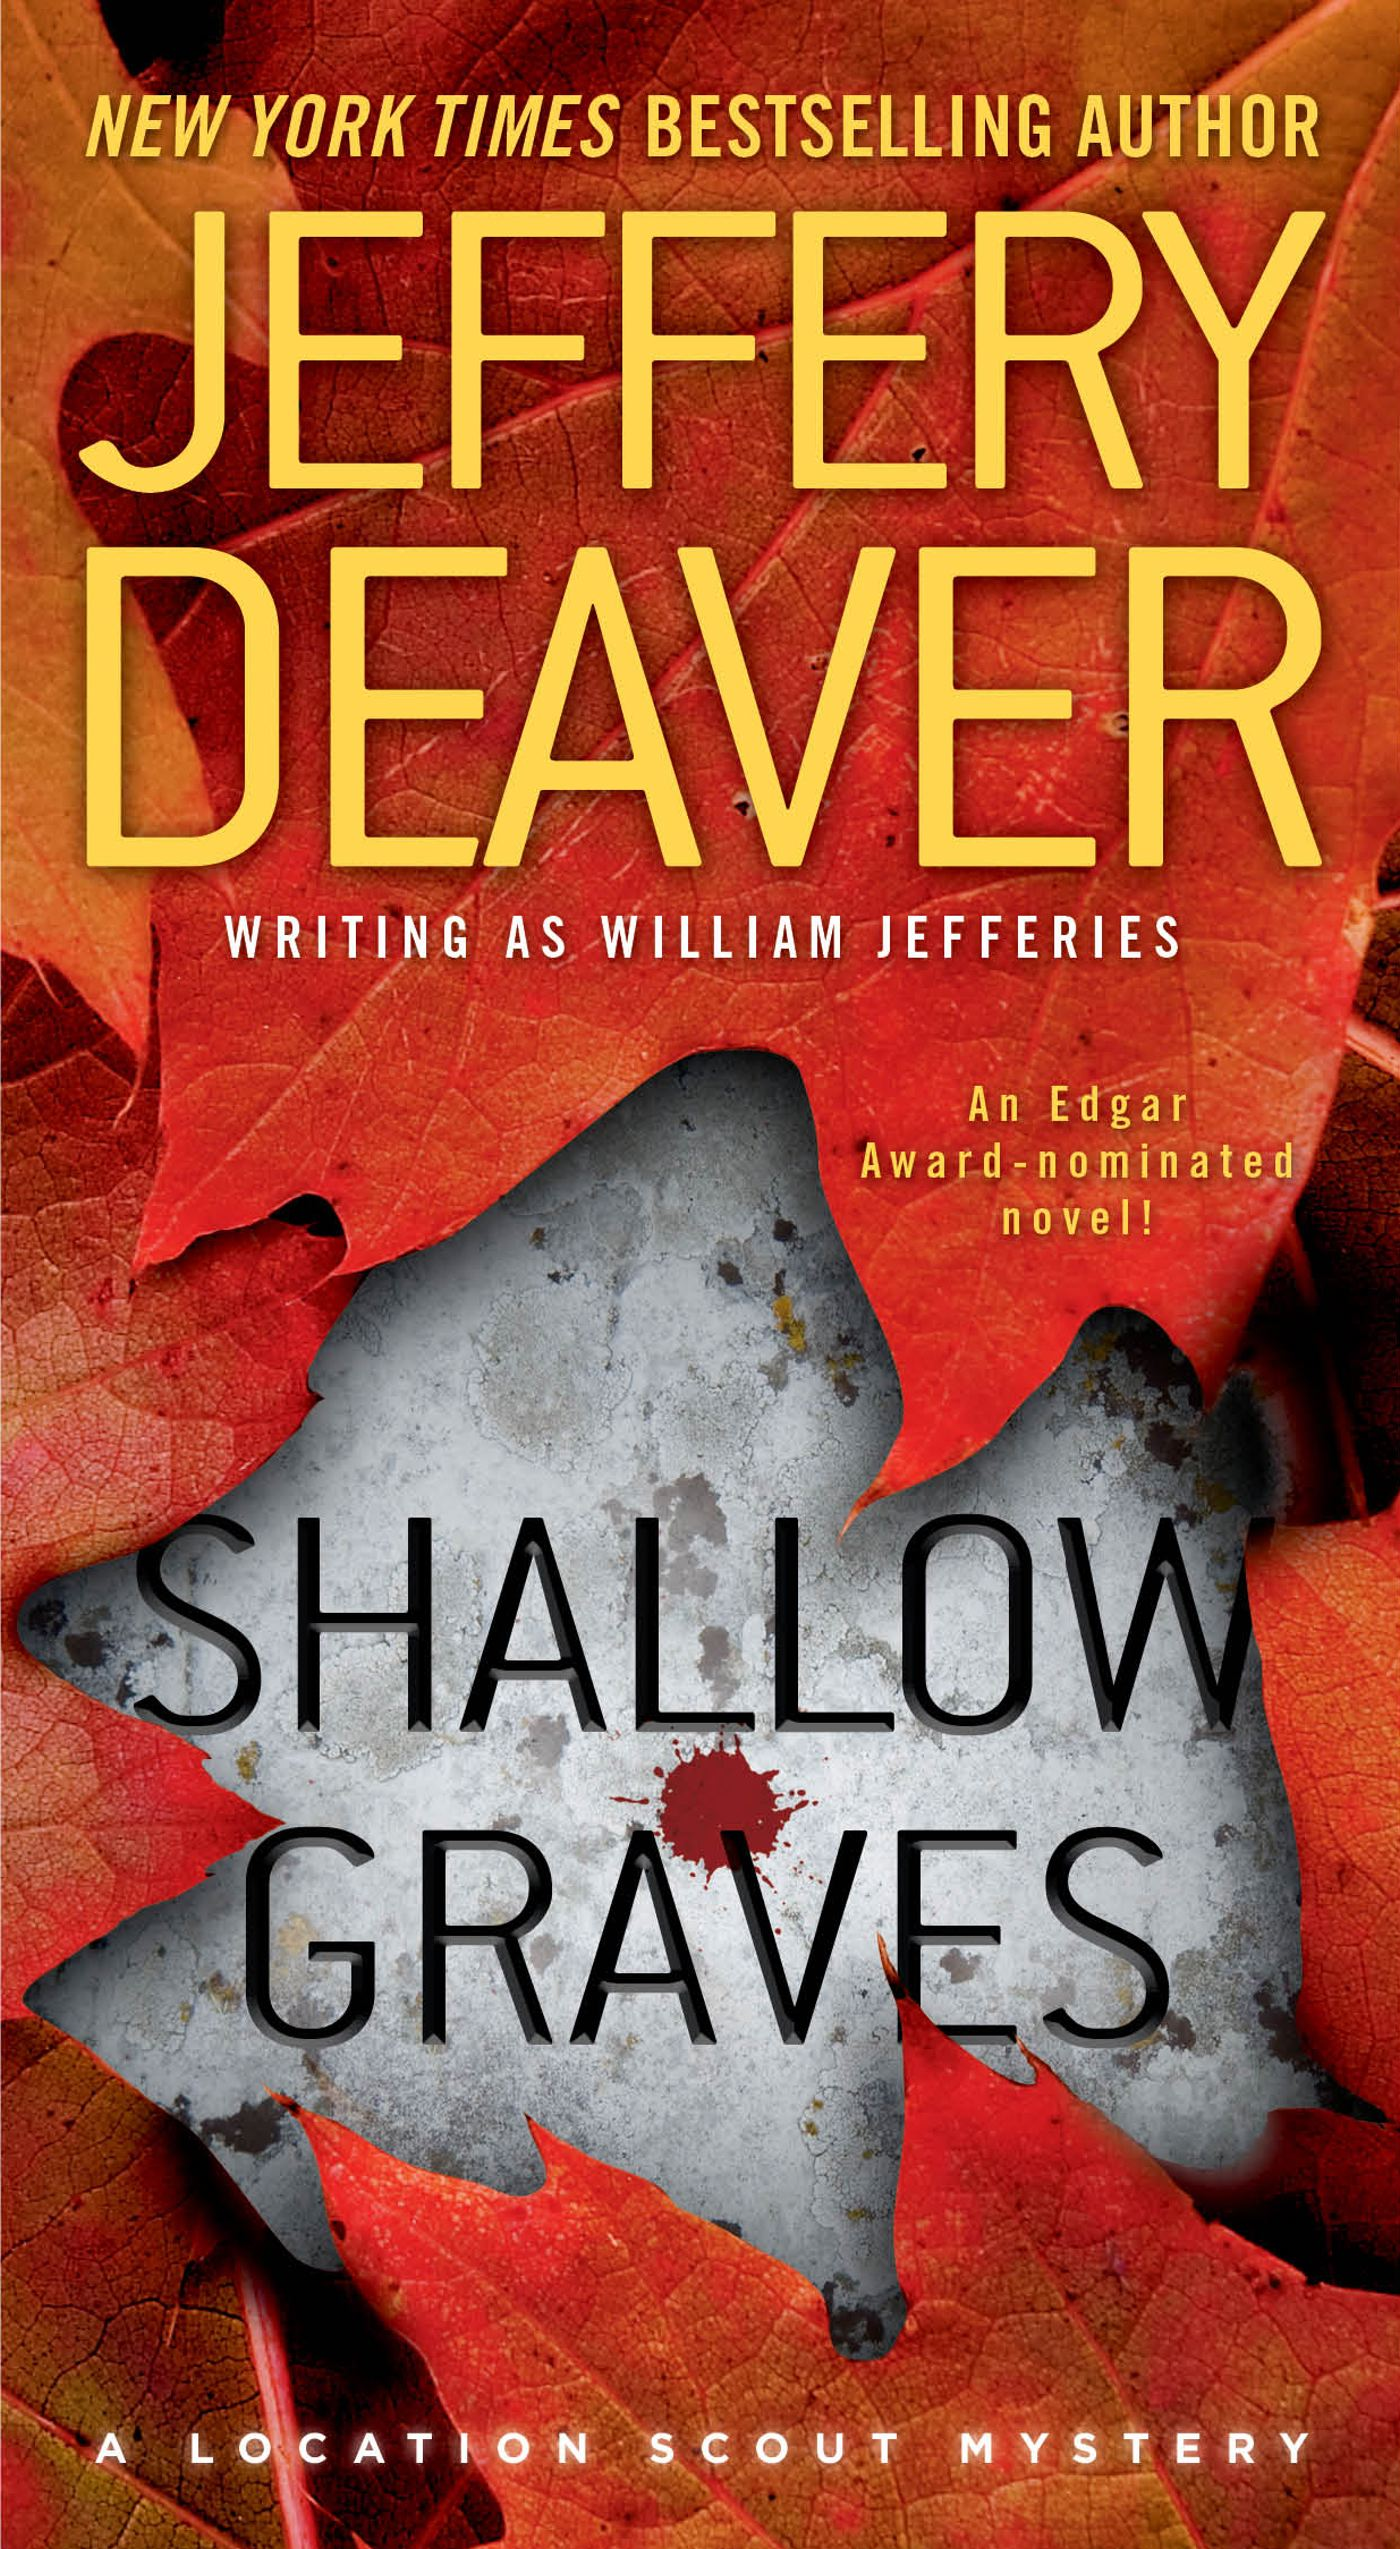 Shallow graves 9781451621419 hr